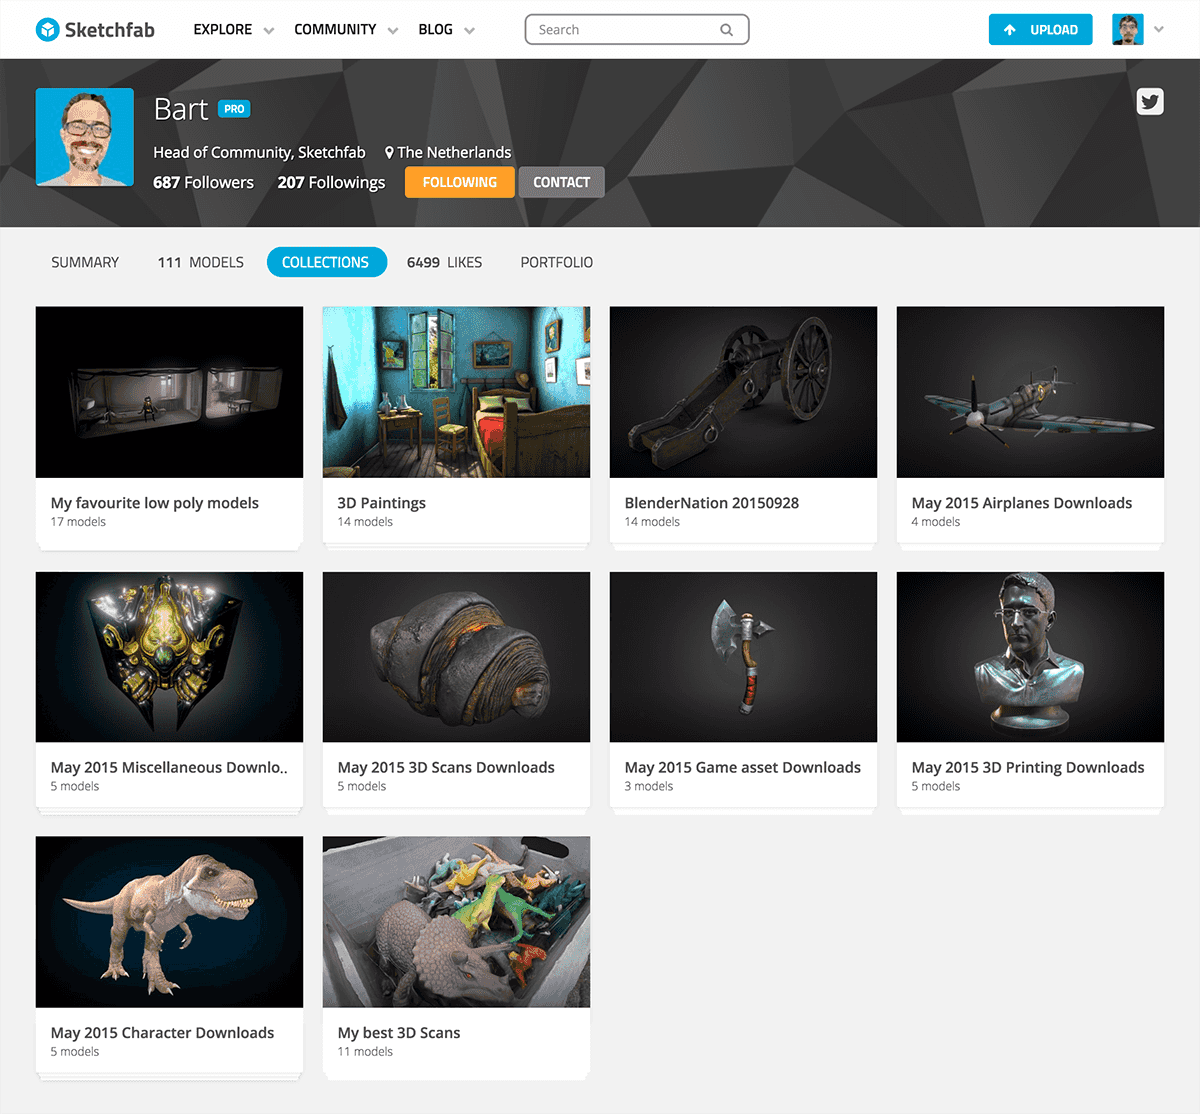 Sketchfab 3d model collections page